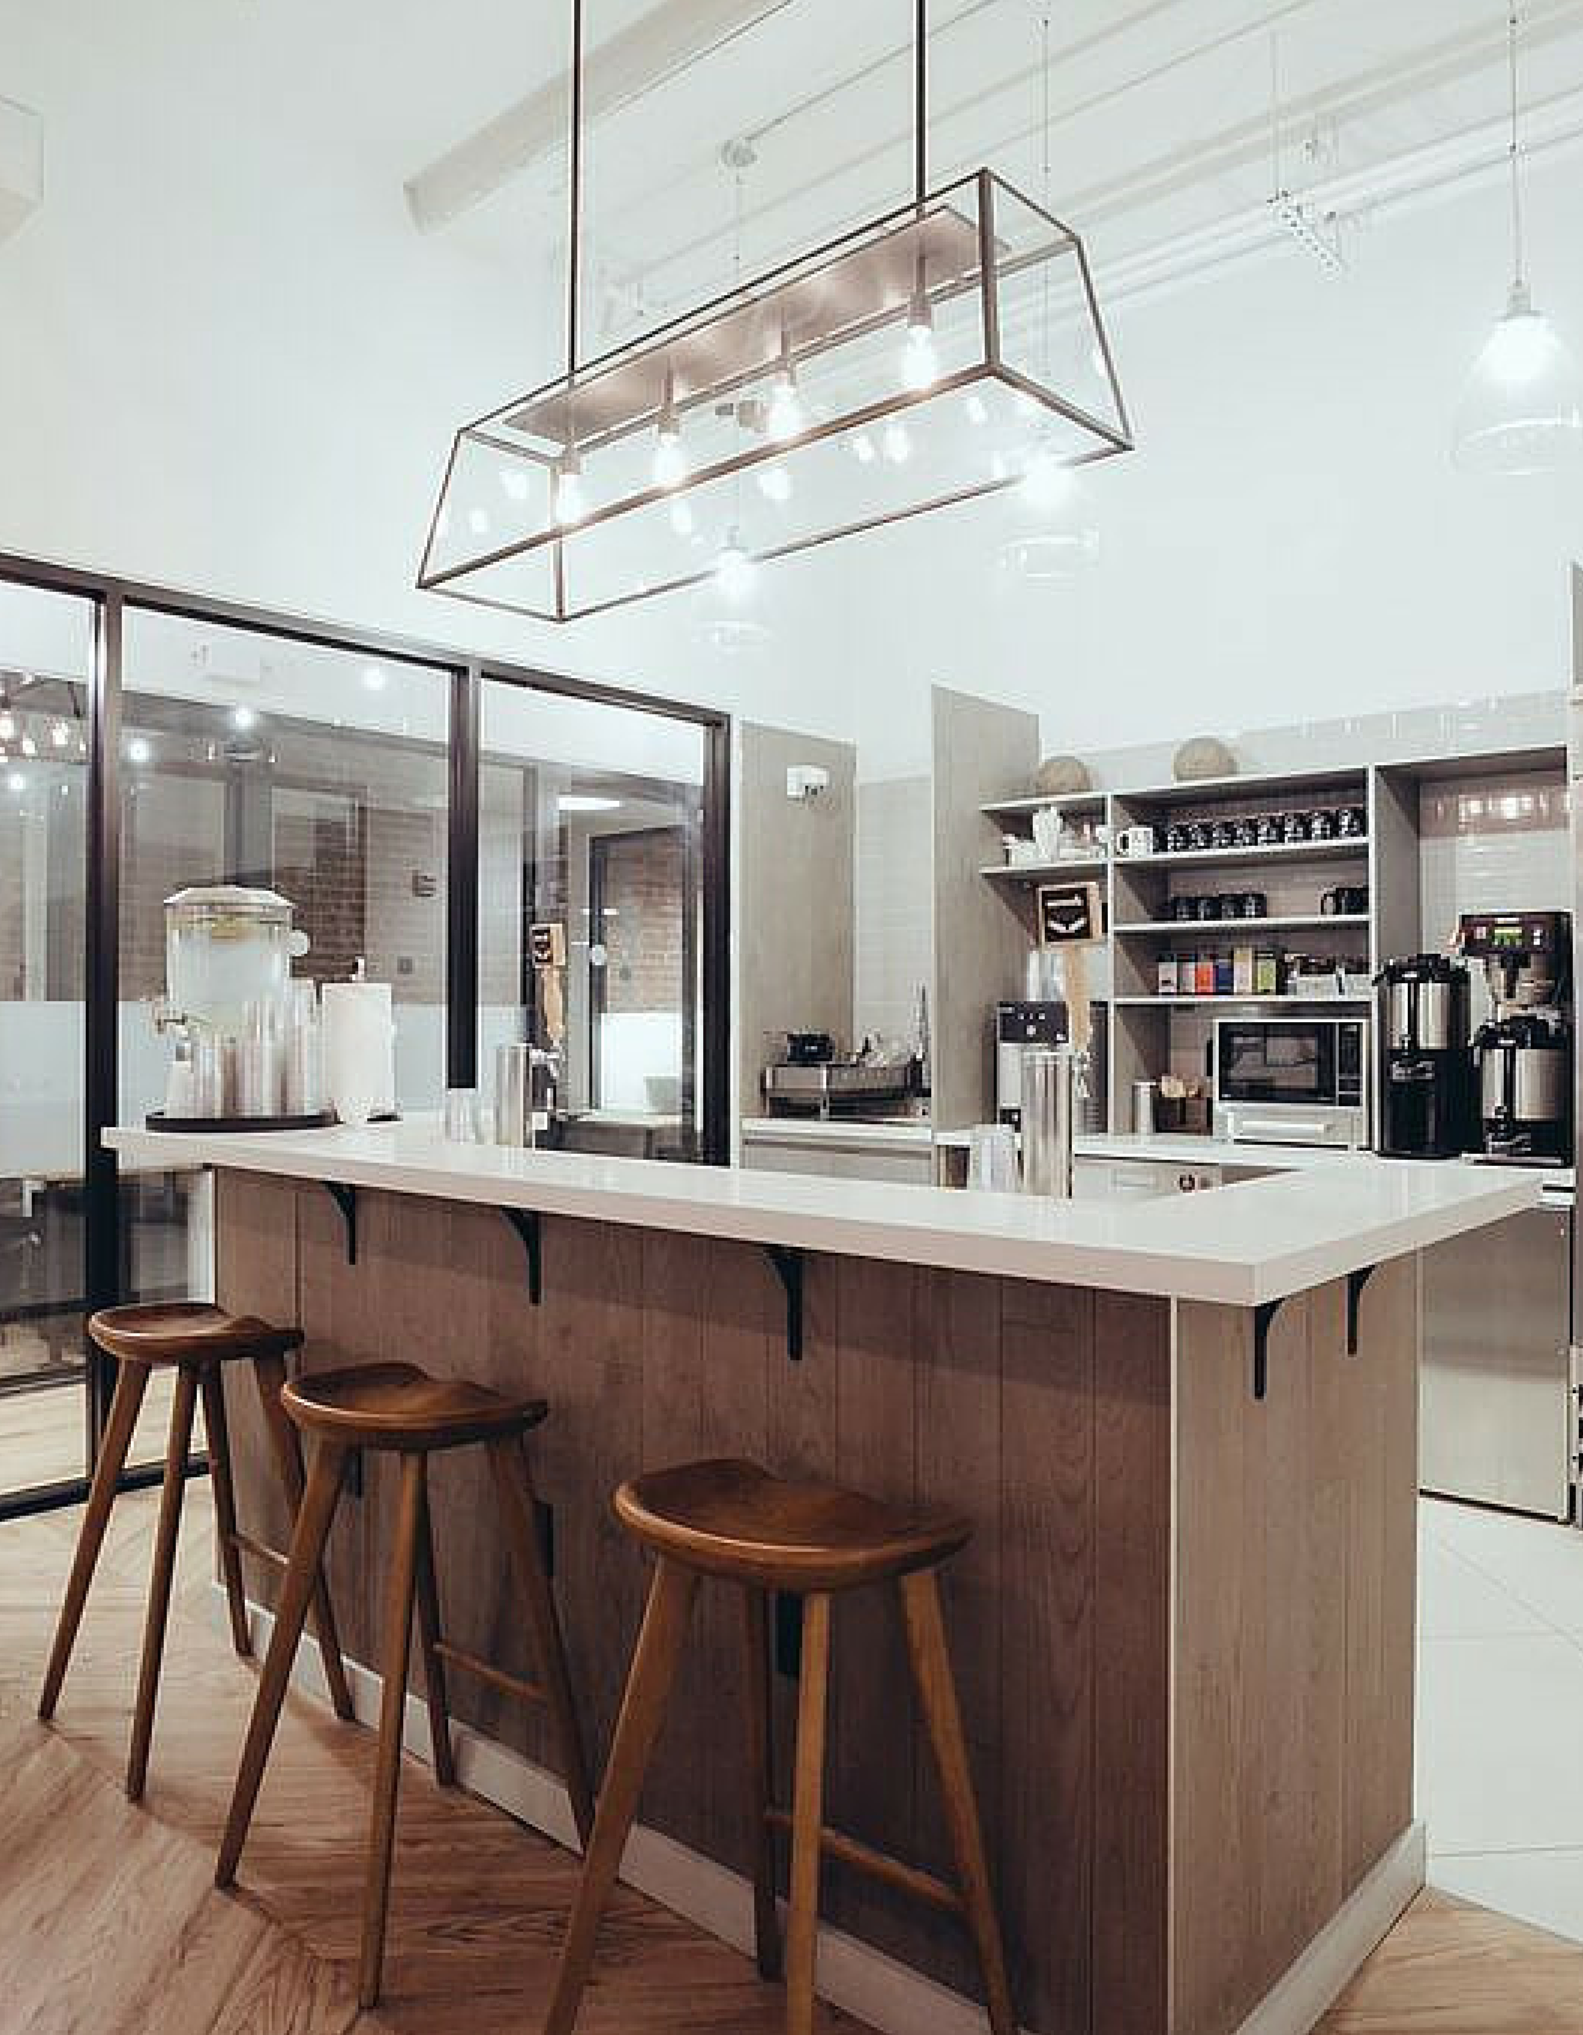 Simple Kitchen Design At WeWork Our West Broadway Office Space. Part 77